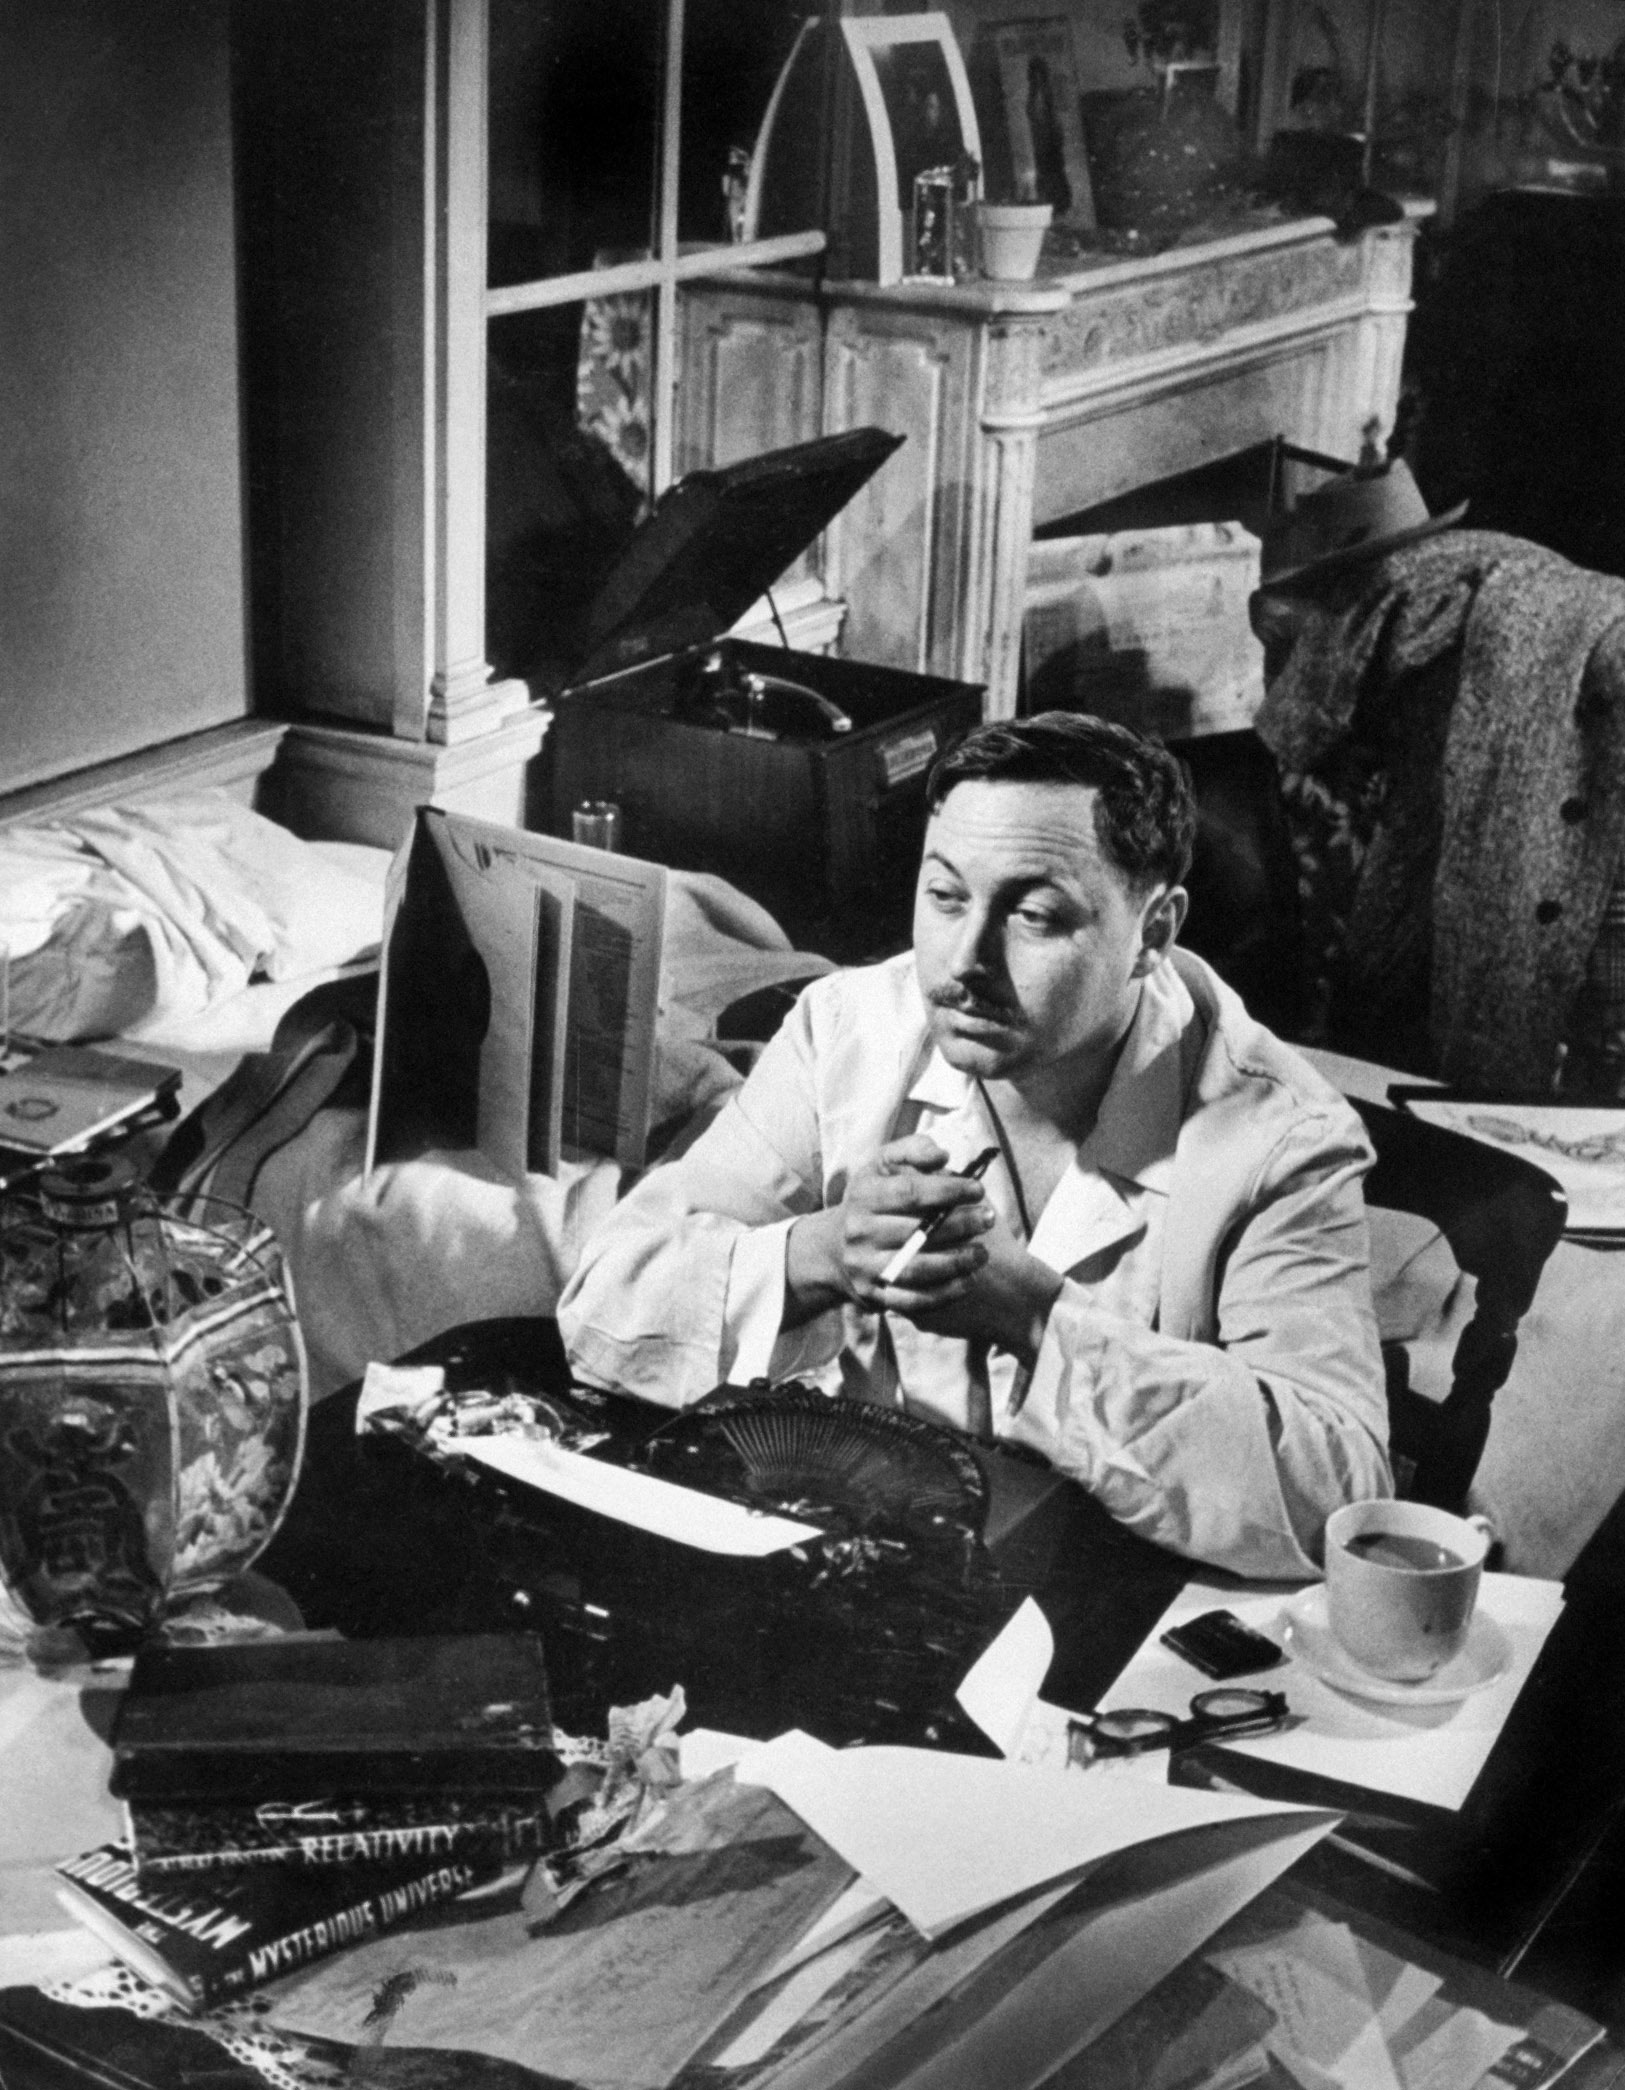 Tennessee Williams at his typewriter in New York in 1948.